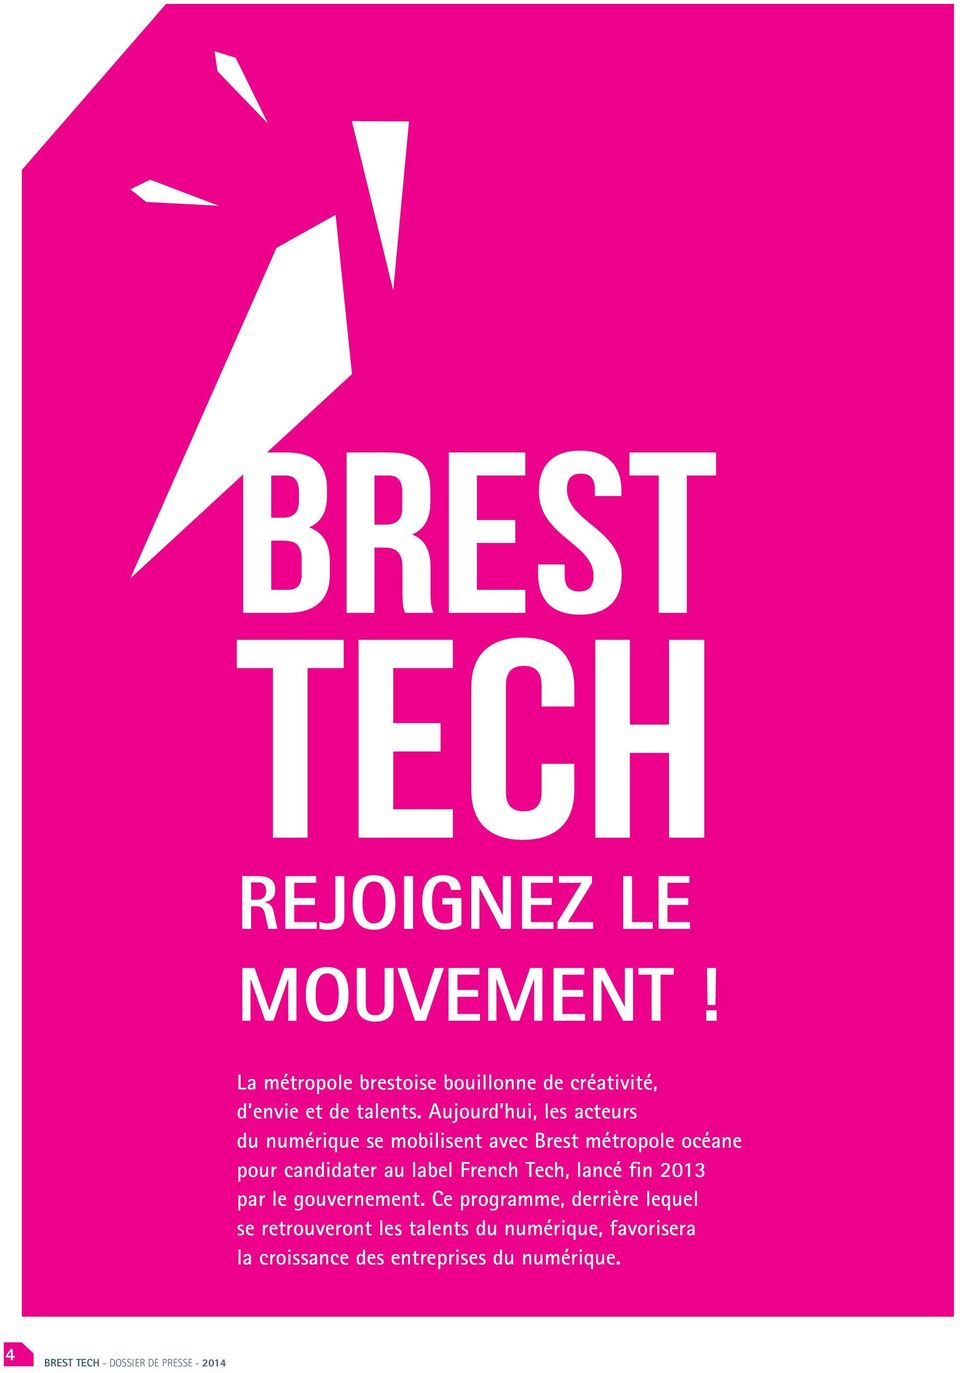 candidater au label French Tech, lancé fin 2013 par le gouvernement.